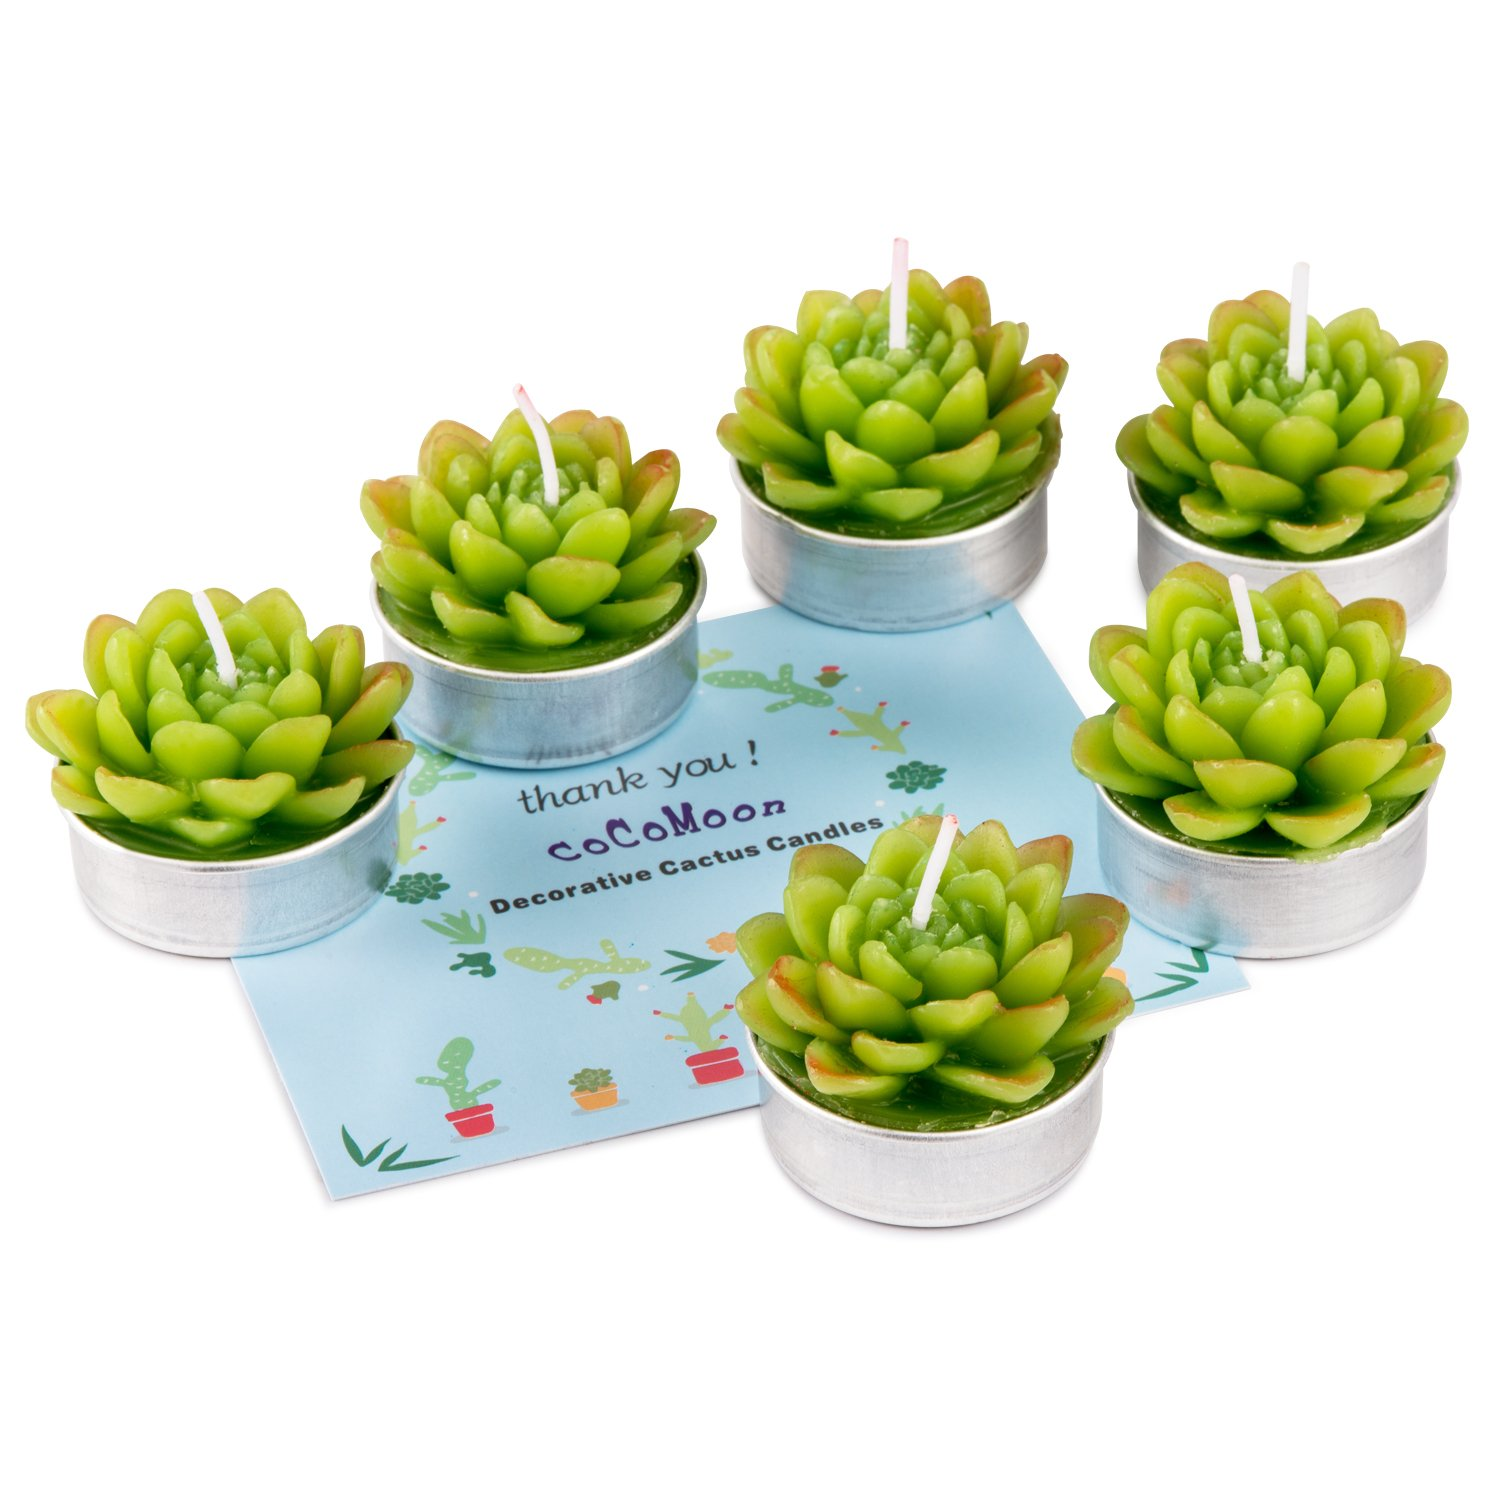 COCOMOON Cactus Candles, Handmade Delicate Succulent Cactus Candles Perfect Cactus Tealight Candles for Birthday Party,Wedding, Spa, Home Decor Birthday Wedding Party( 6 Pcs) Cactus Candles 6Pcs